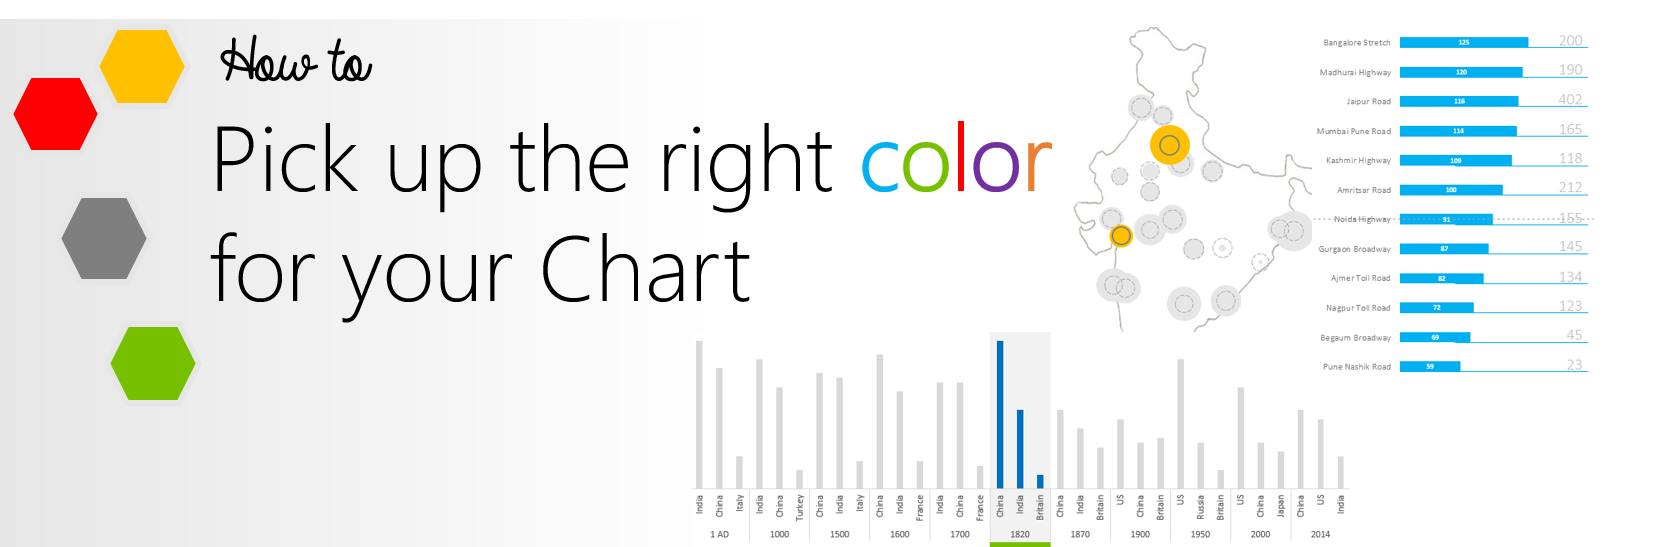 How to pick up a right color for your chart 1